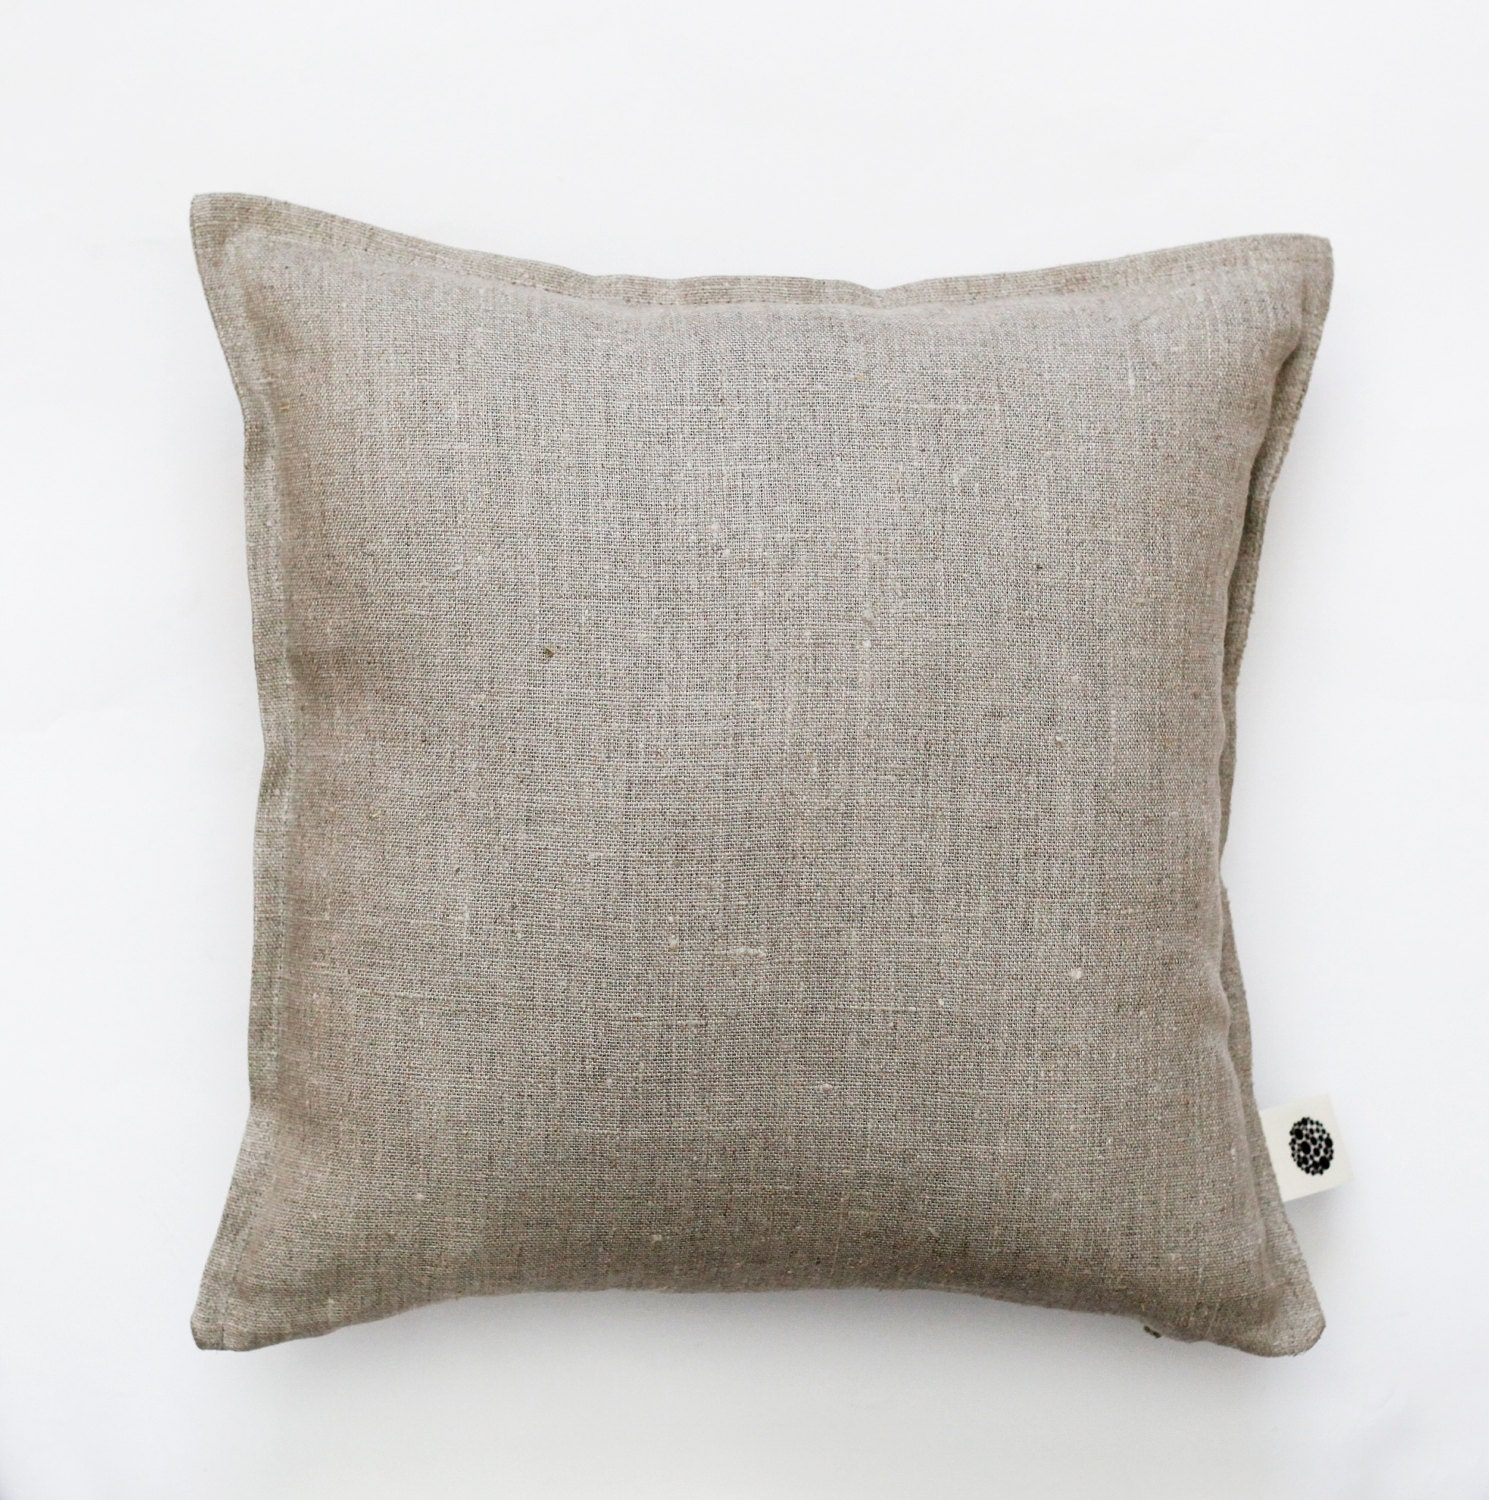 Throw Pillows With Covers : Linen pillow cover decorative pillows covers linen by pillowlink